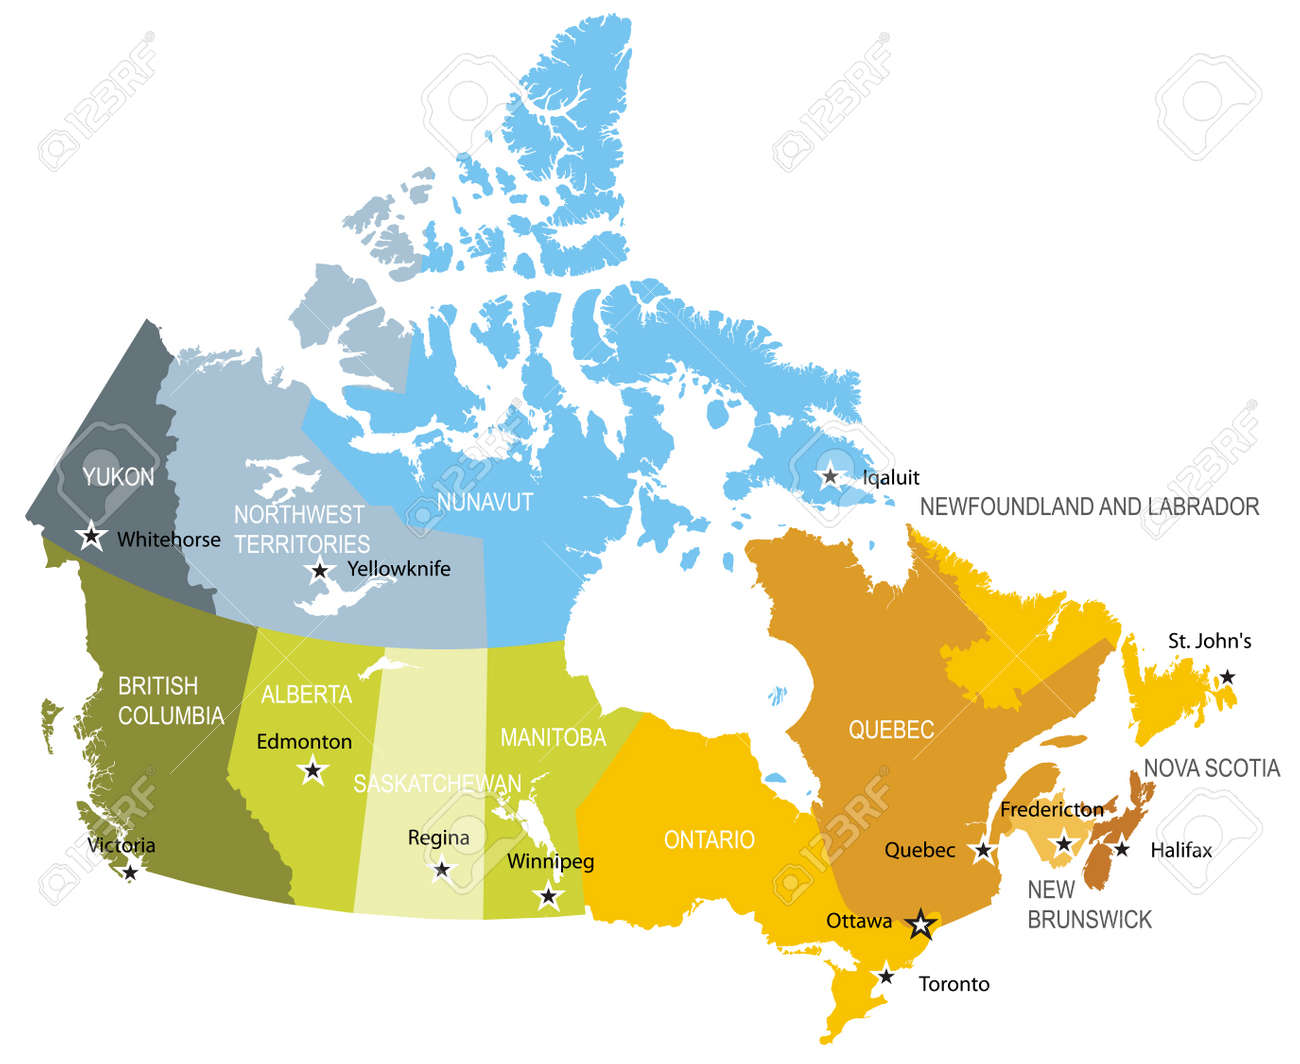 Map of provinces and territories of canada royalty free cliparts map of provinces and territories of canada stock vector 13043106 gumiabroncs Images